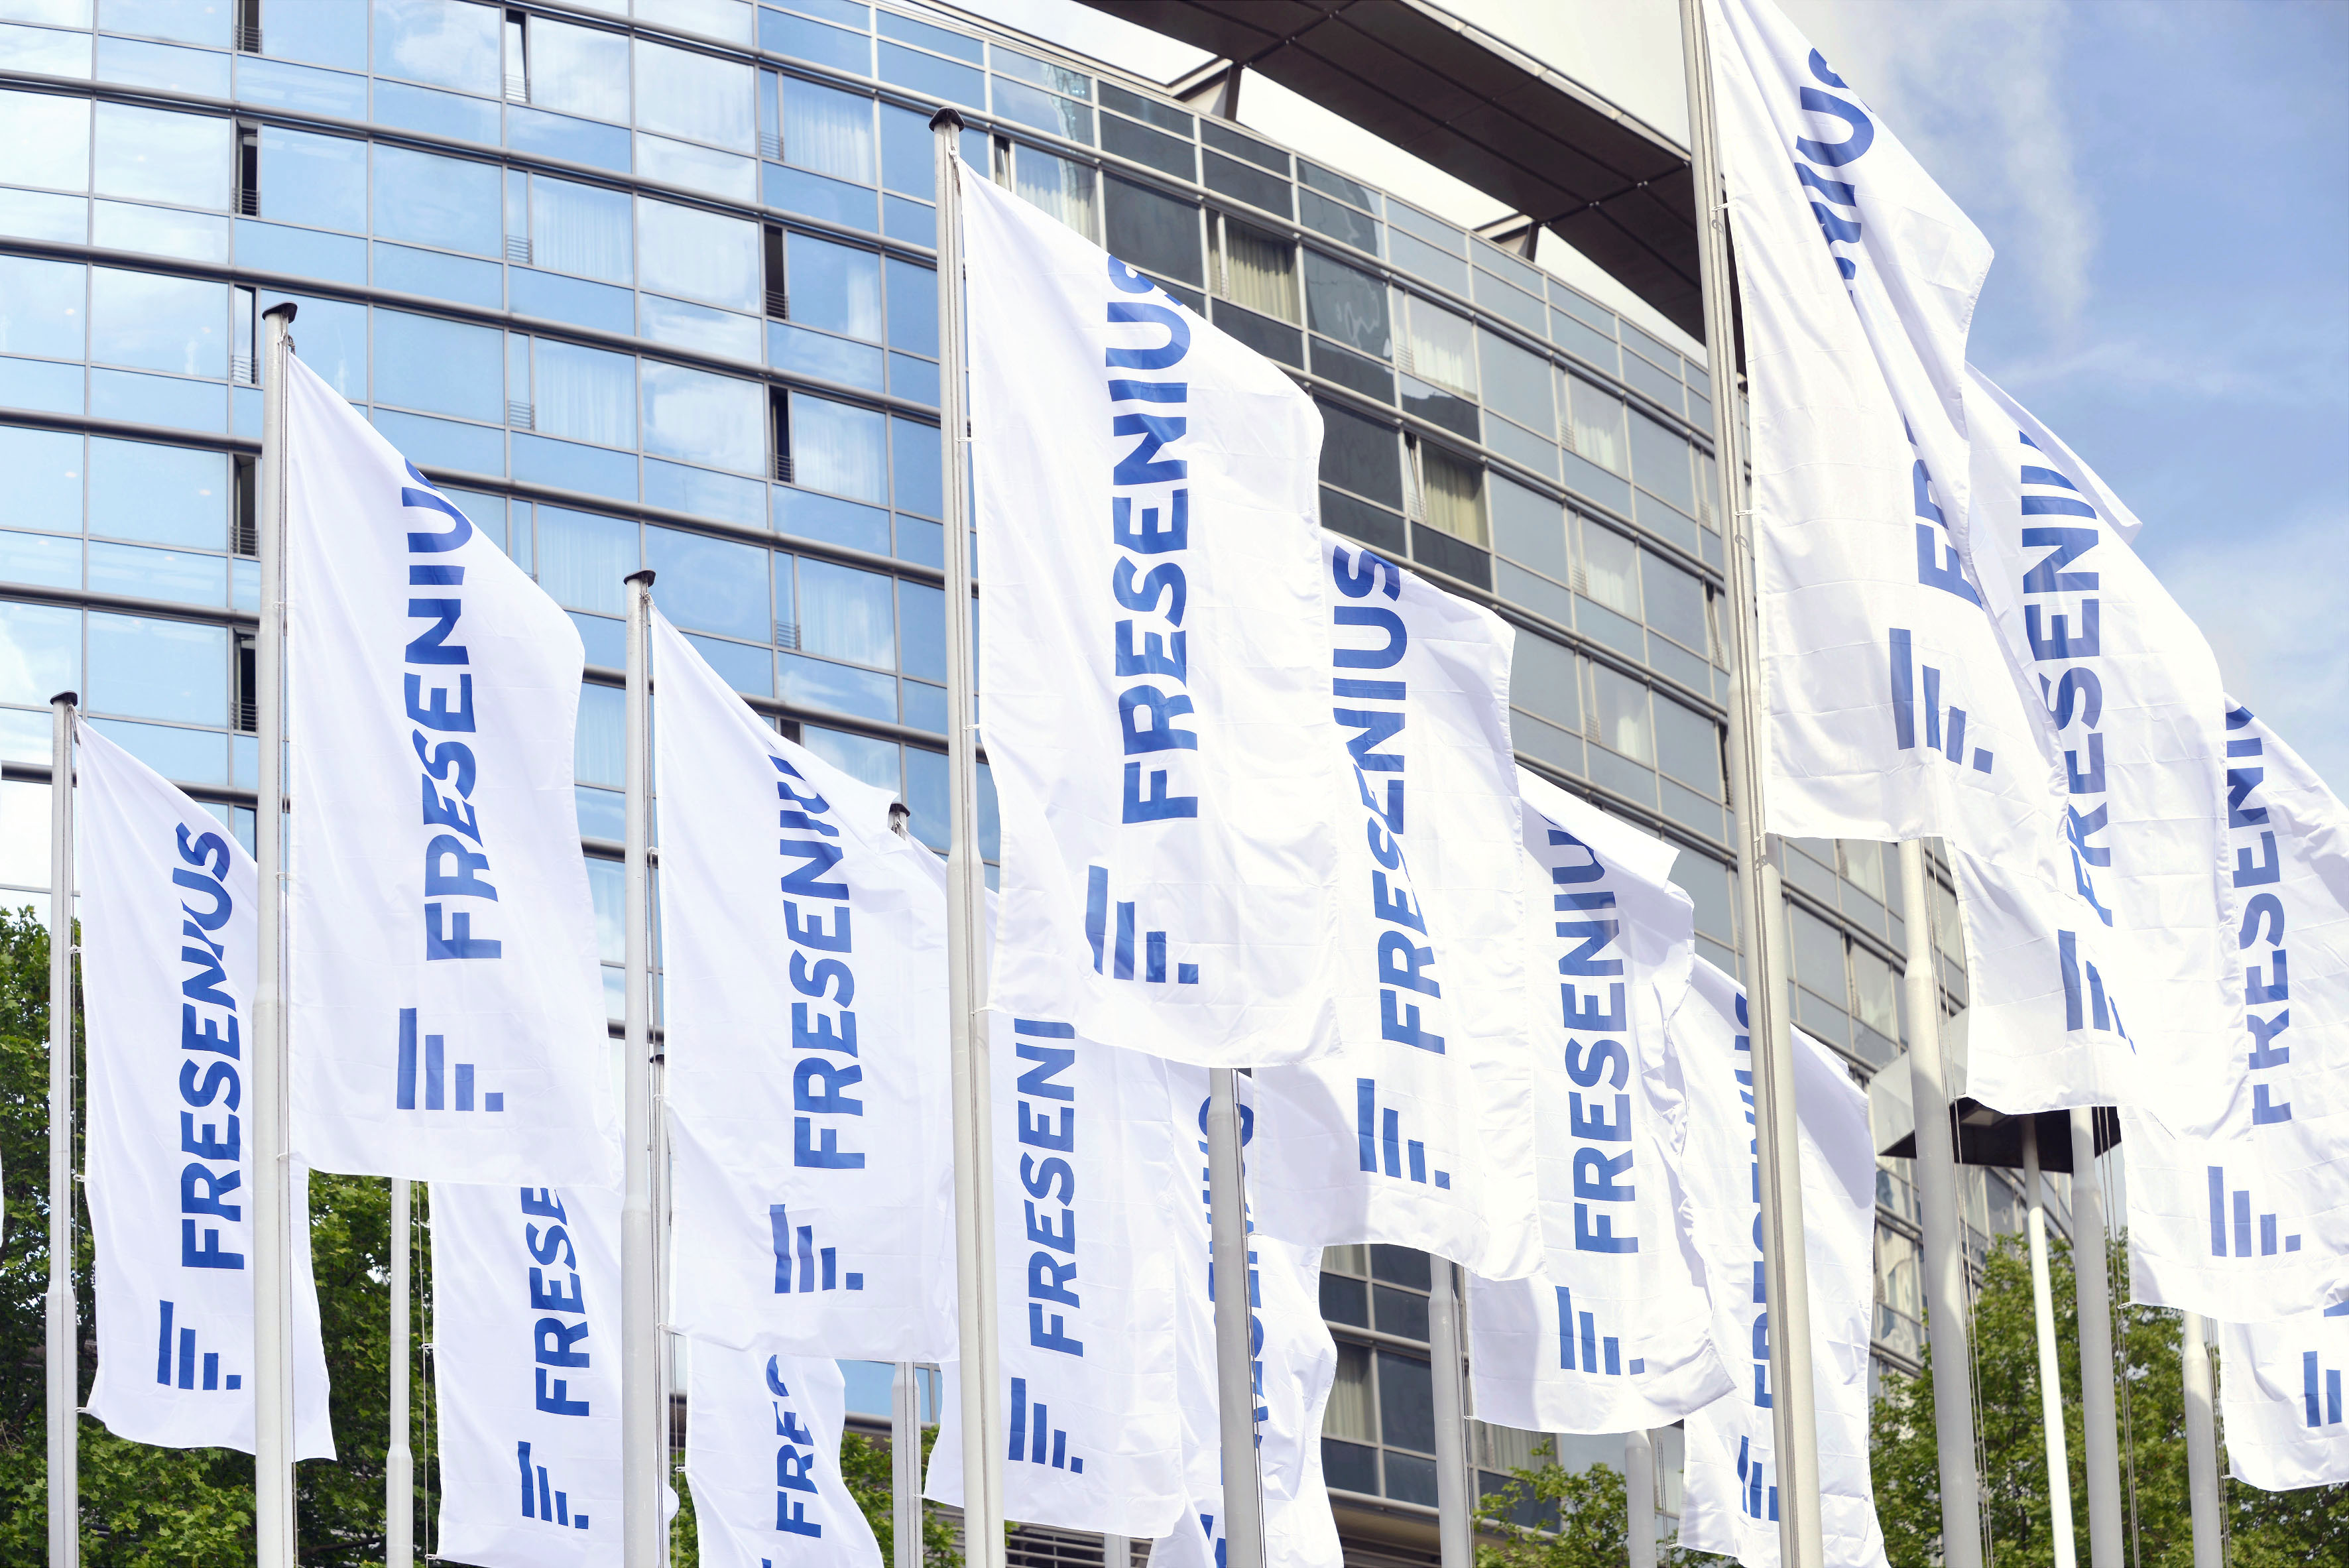 Fresenius nears deal to acquire Akorn